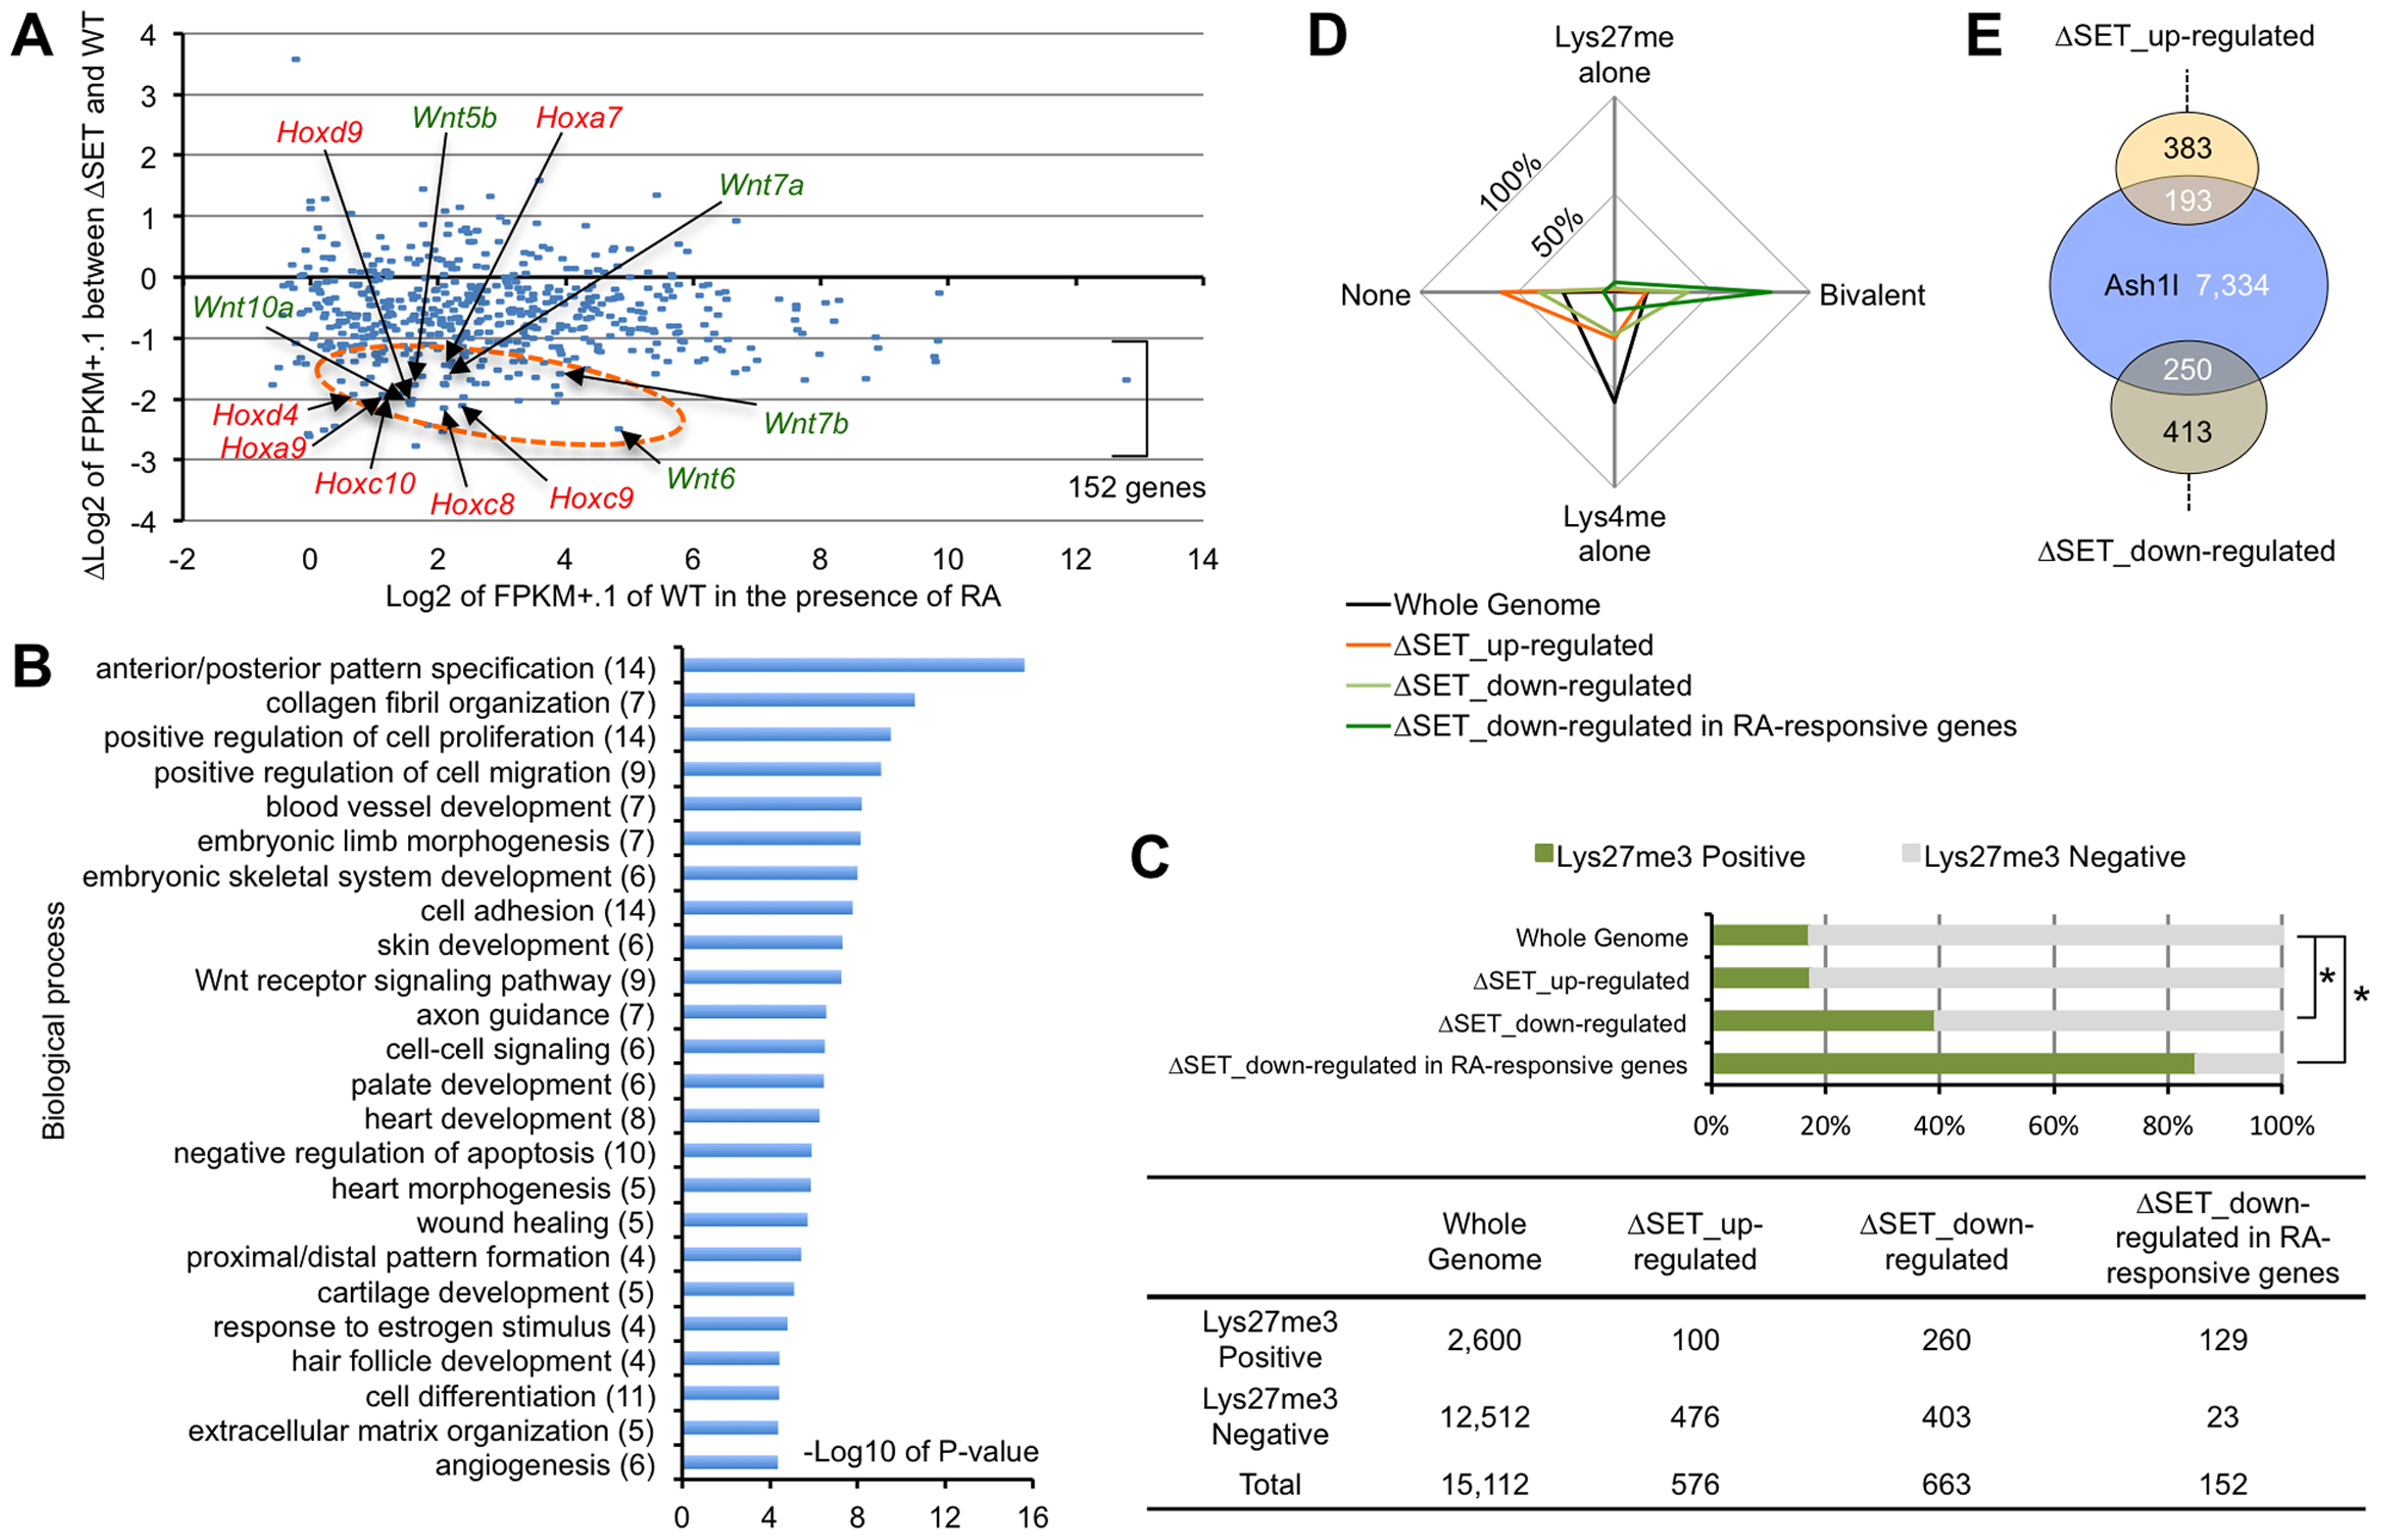 Comprehensive gene expression analyses of differentiating ES cells.